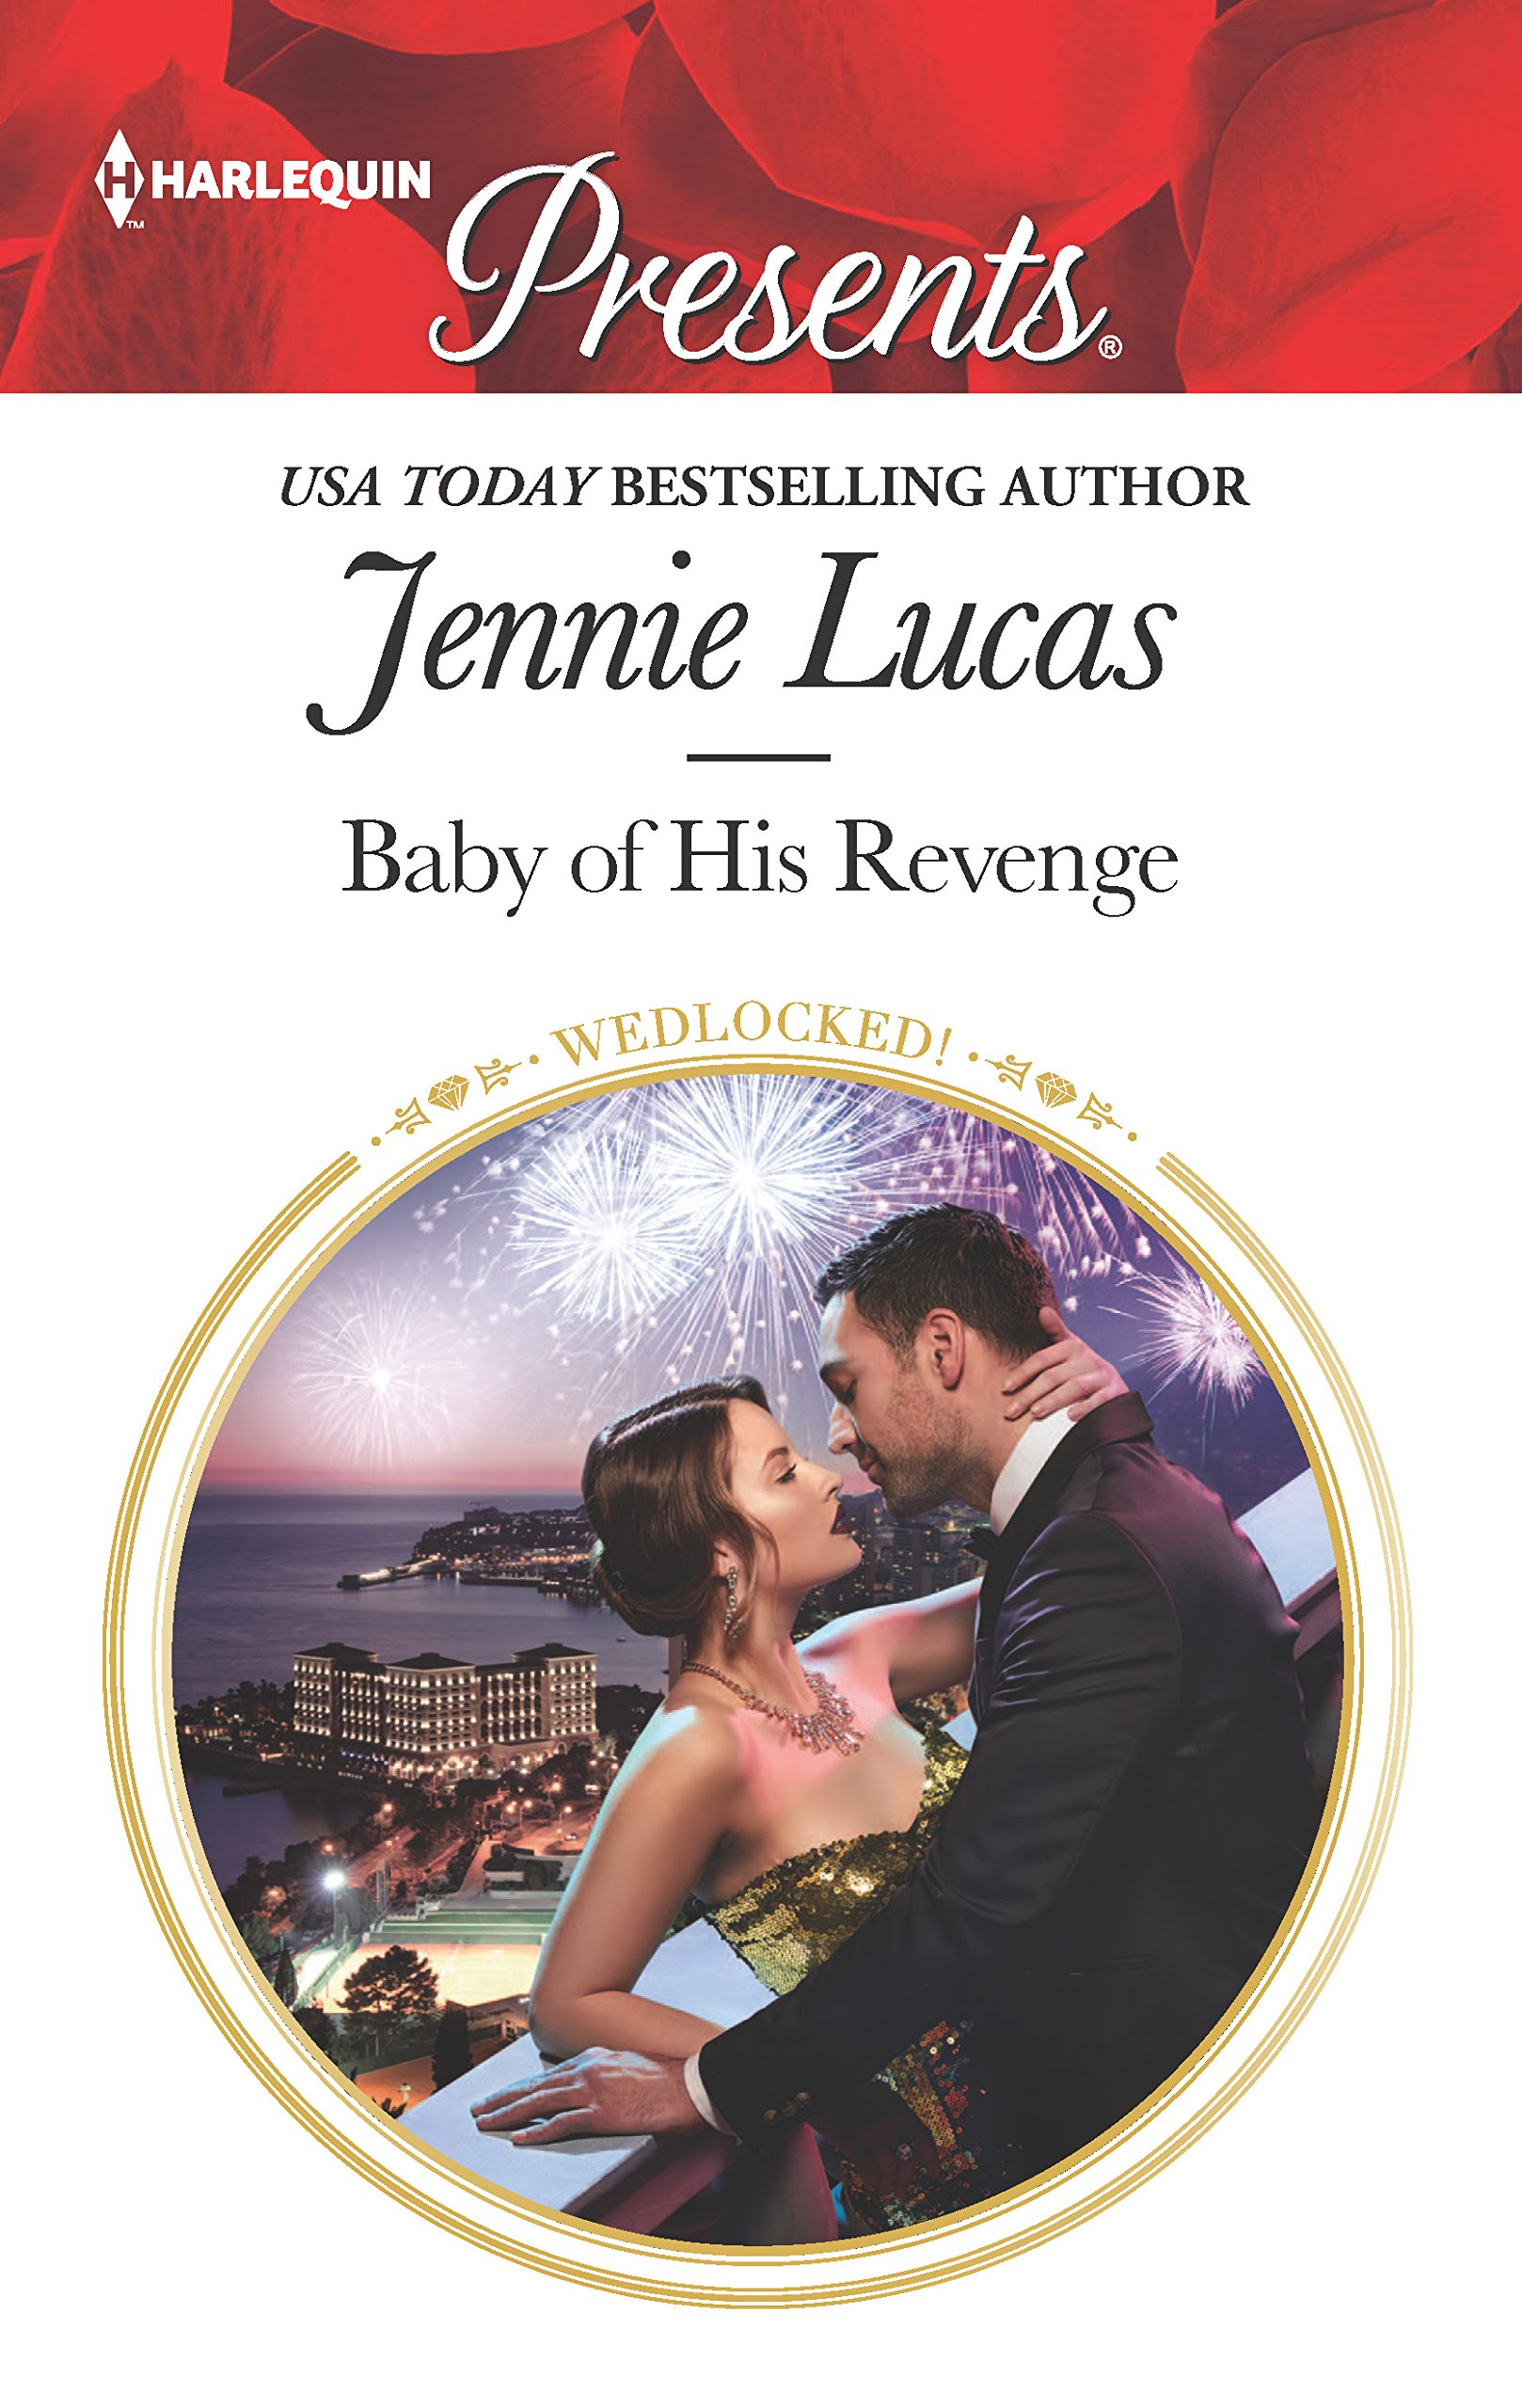 Baby of His Revenge (Wedlocked!) PDF